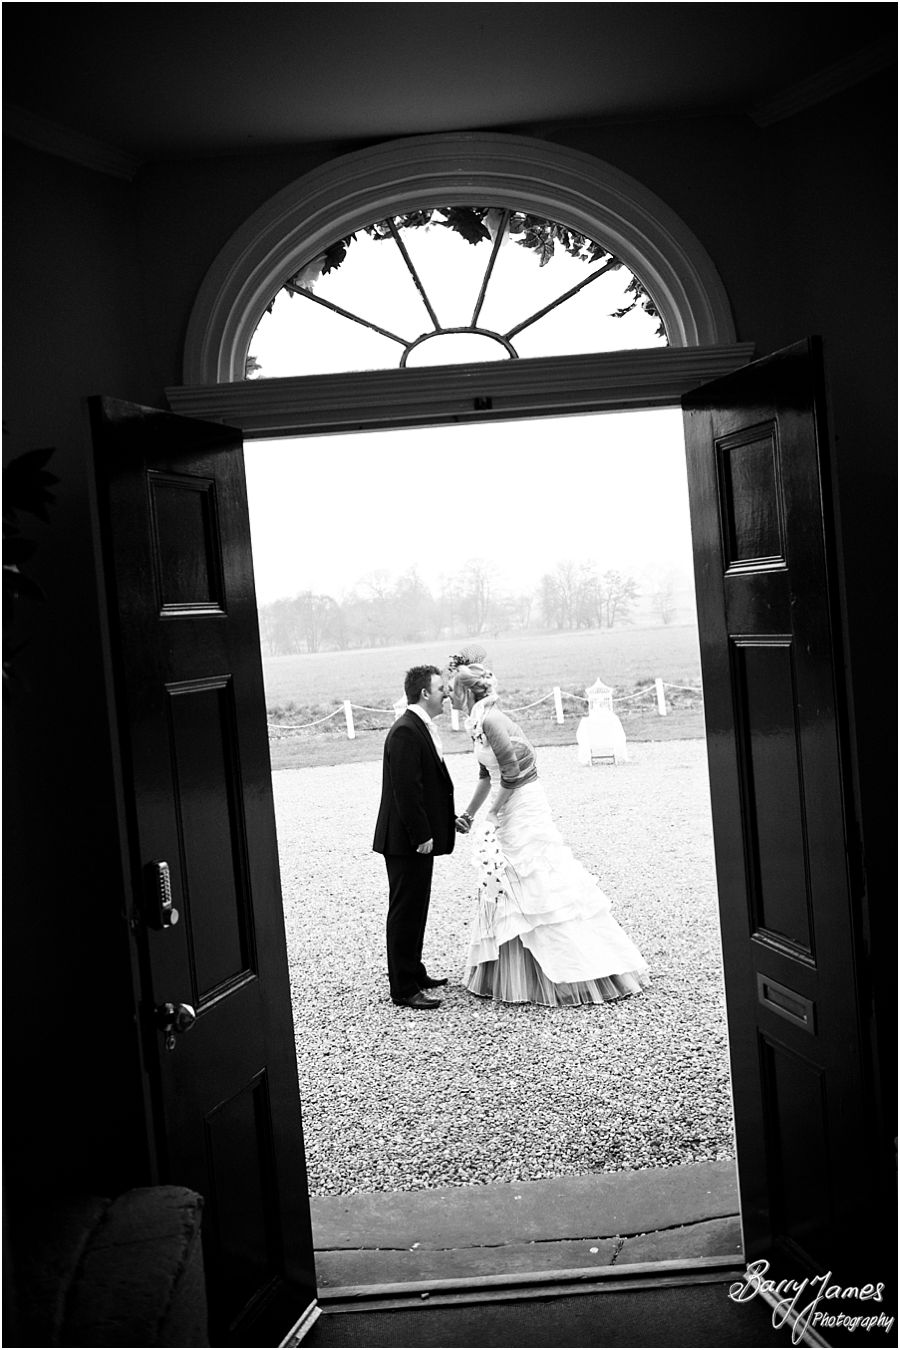 Creating beautiful wedding photography stories at Somerford Hall in Brewood by Wolverhampton Wedding Photographer Barry James